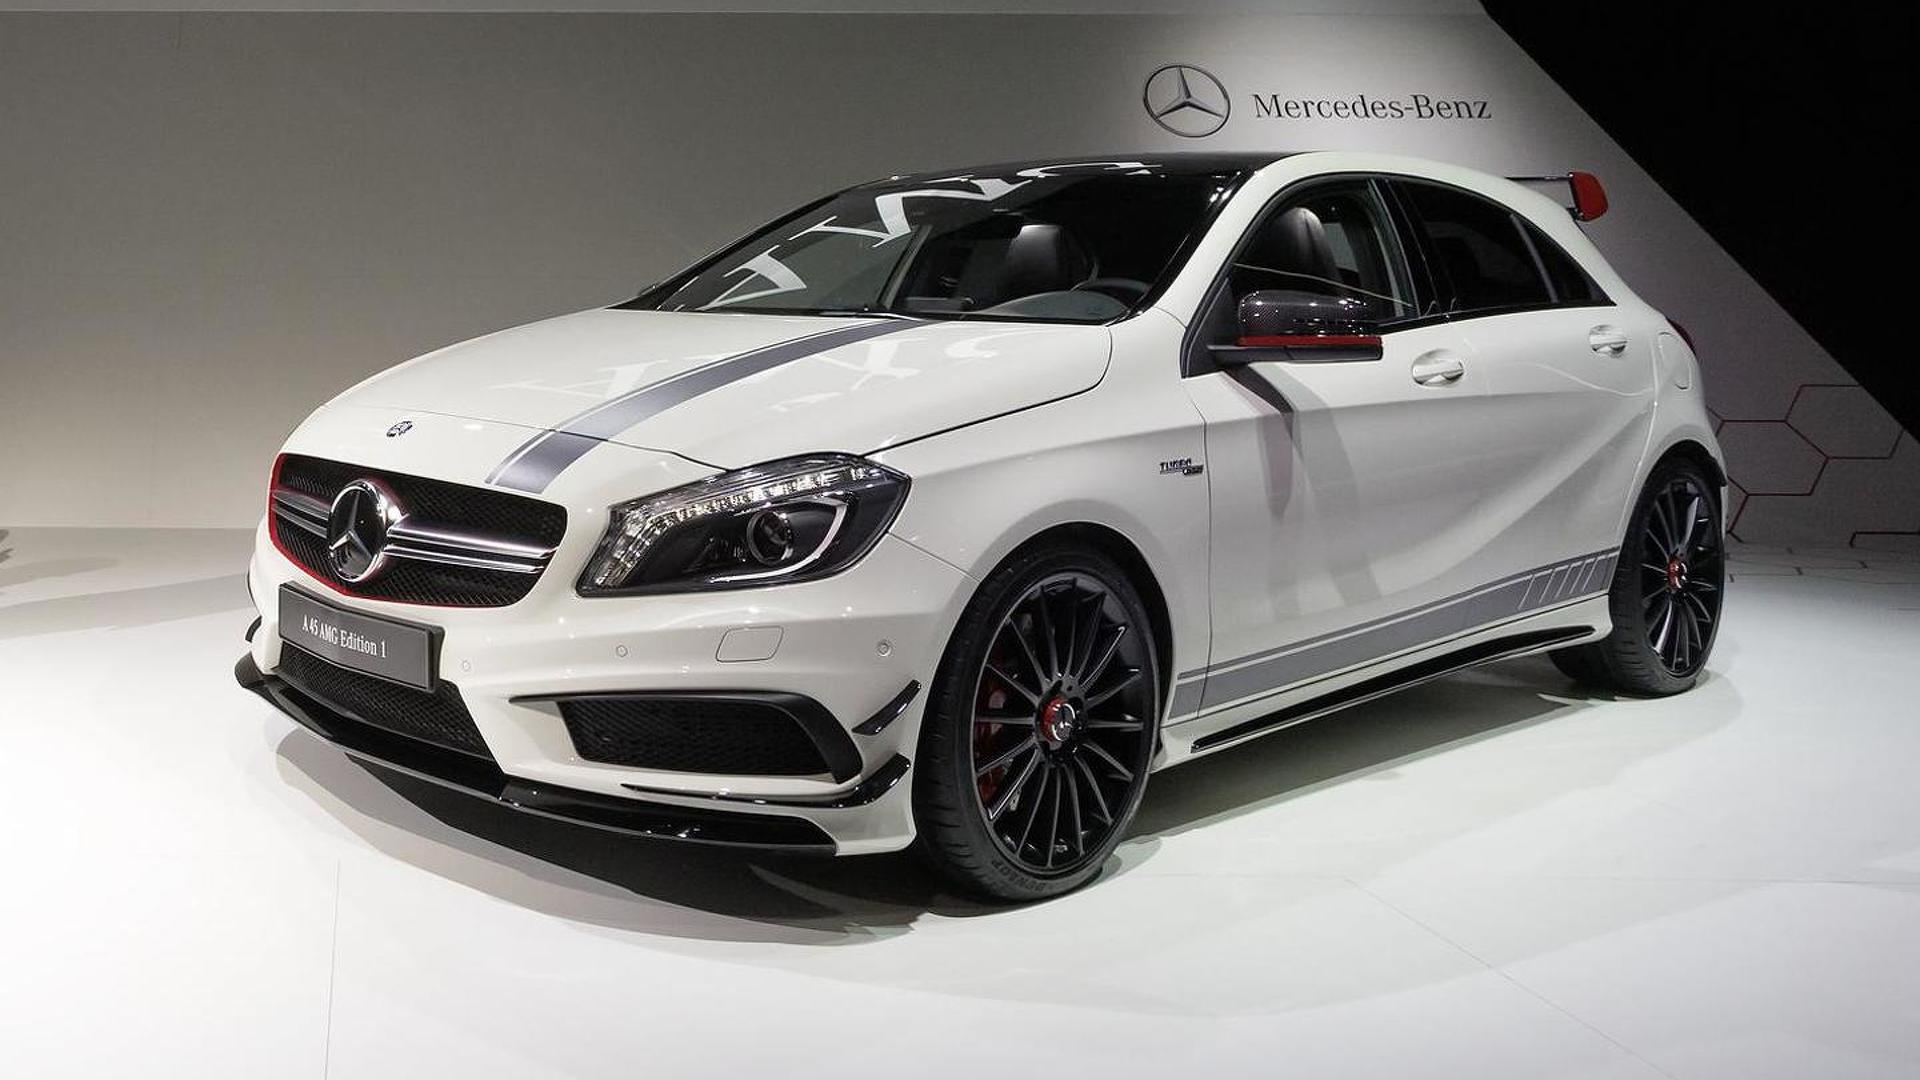 Lewis Hamilton and Nico Rosberg promote Mercedes-Benz A45 AMG [video]